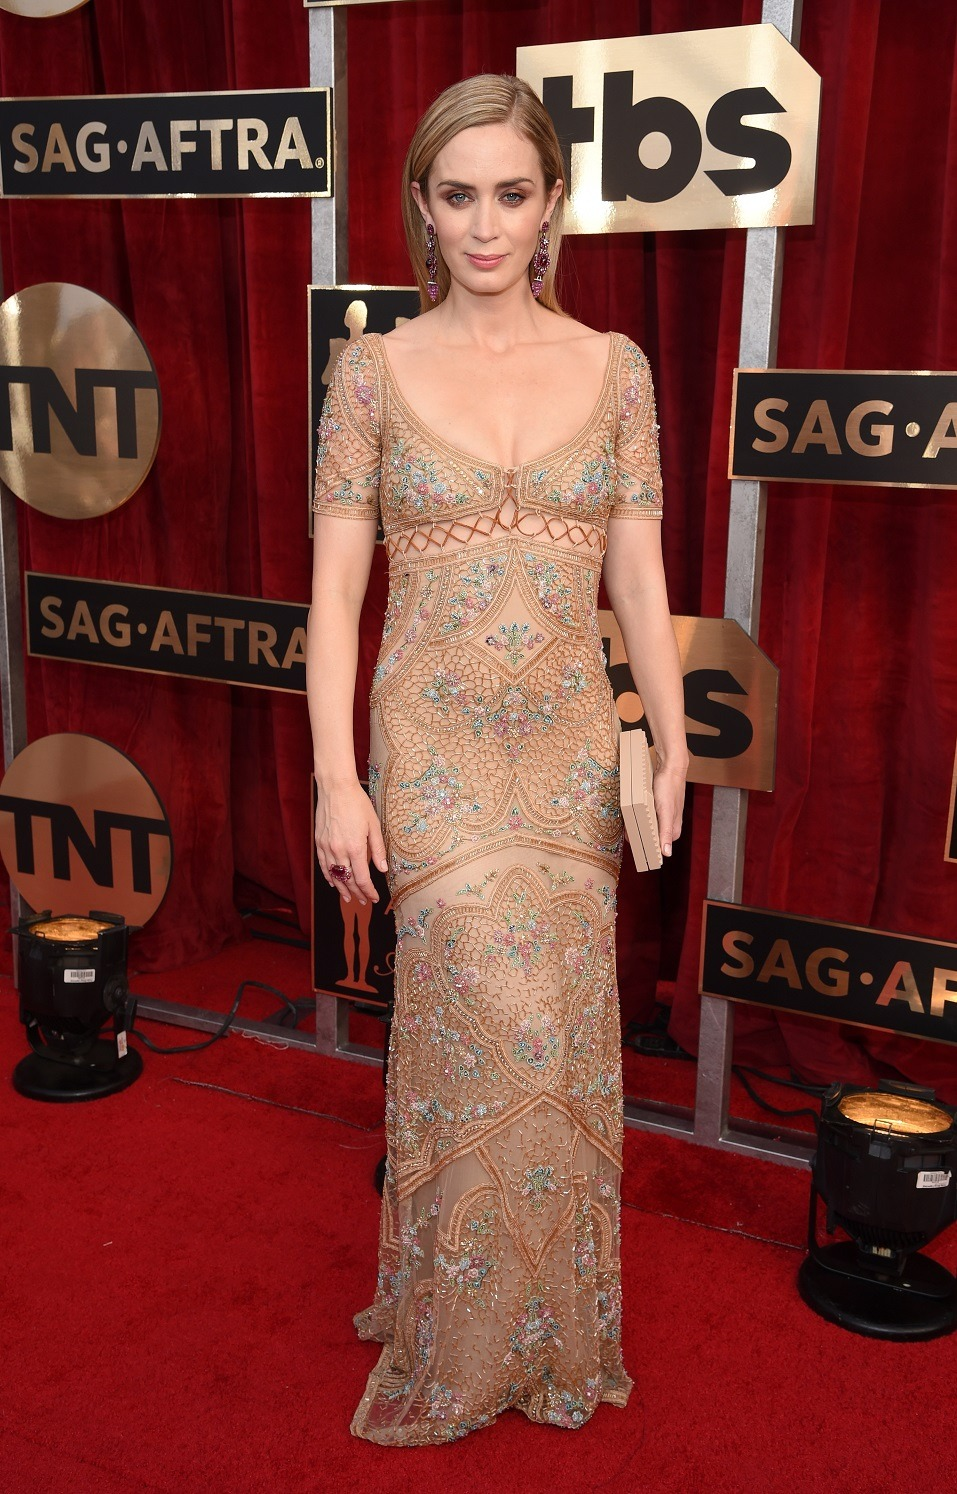 Actor Emily Blunt attends The 23rd Annual Screen Actors Guild Awards